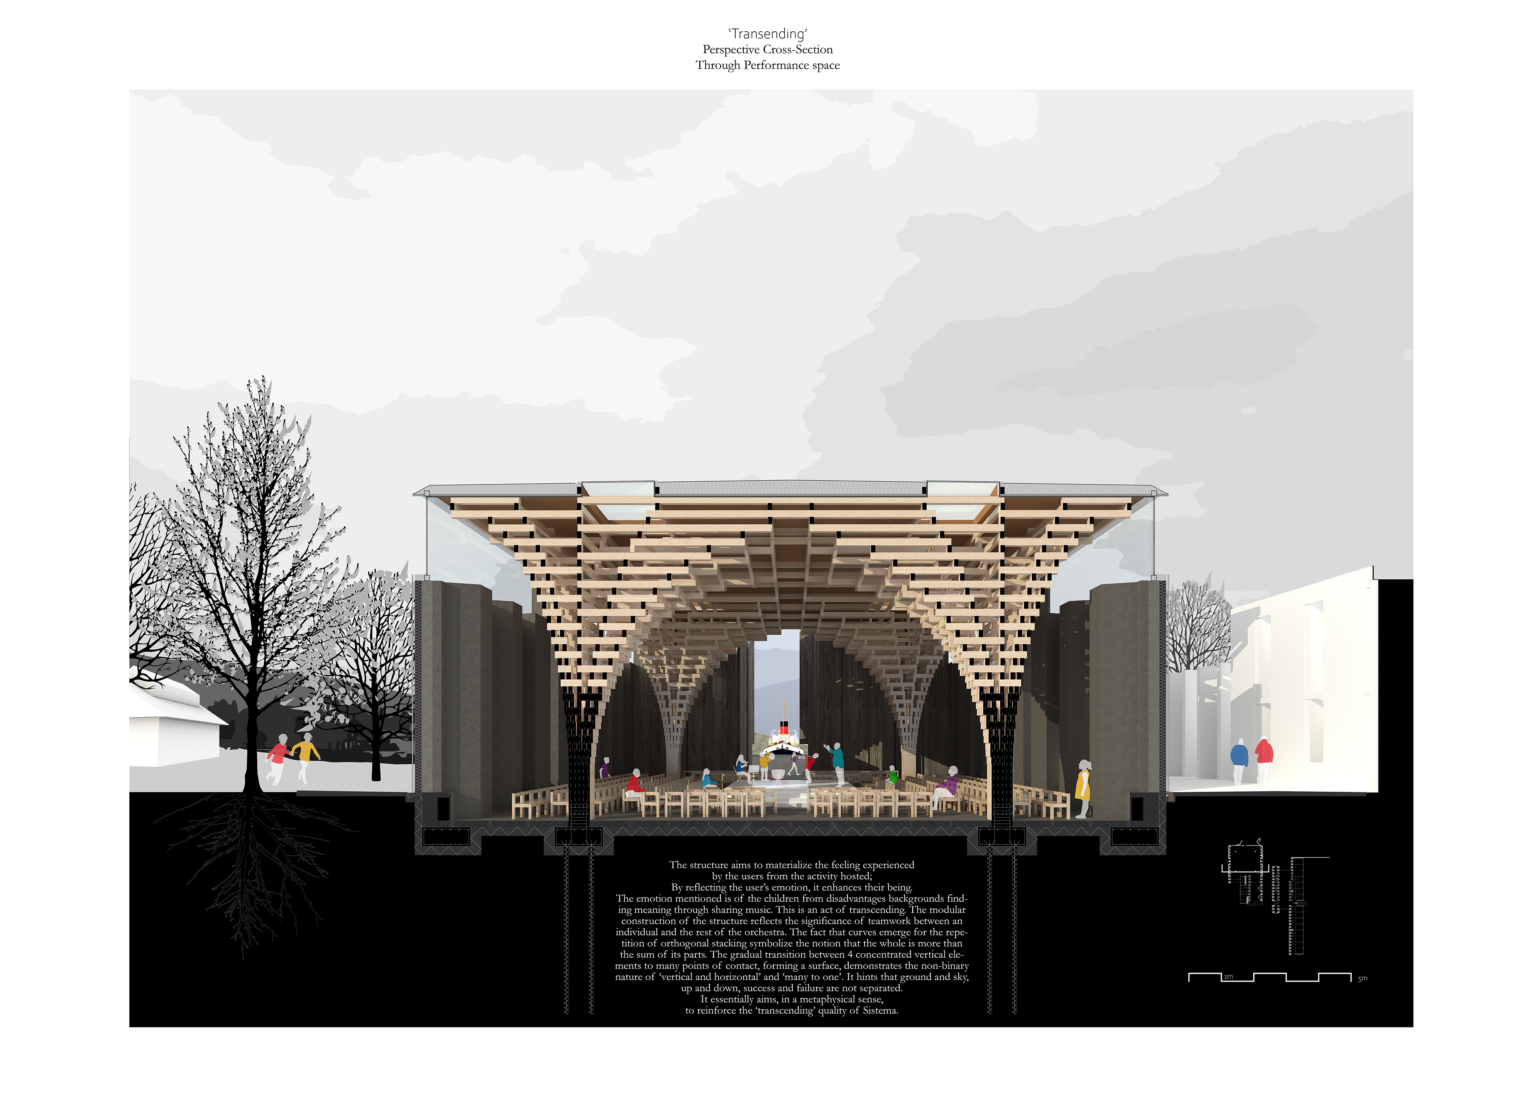 Performance Hall - Perspective Cross-Section